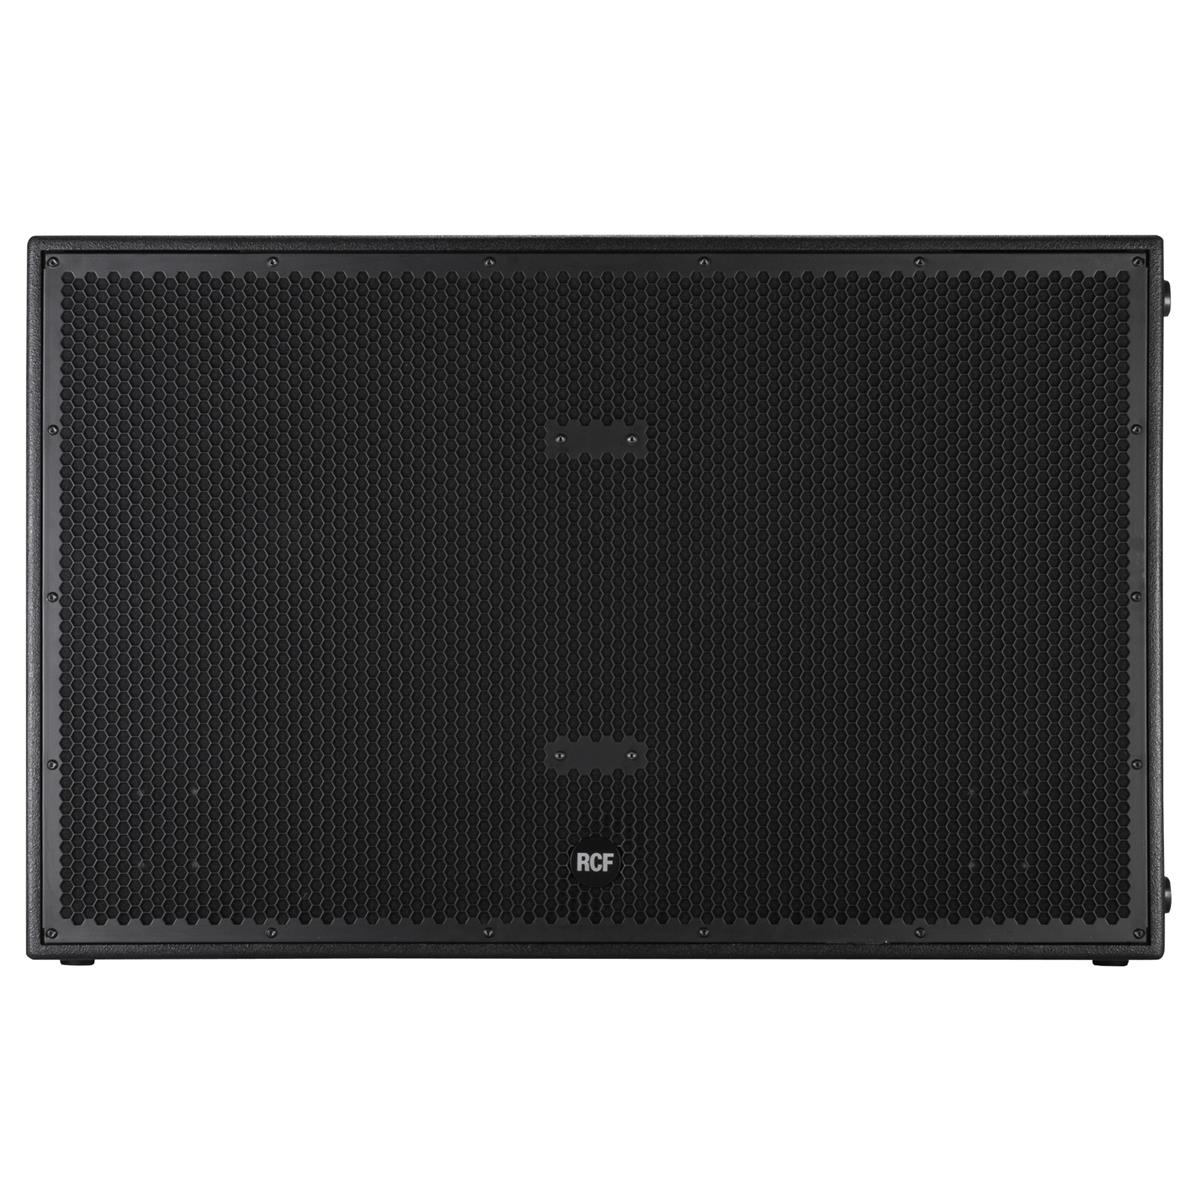 RCF Double 18in Bass Reflex Active Subwoofer, 2500Wrms, 5000